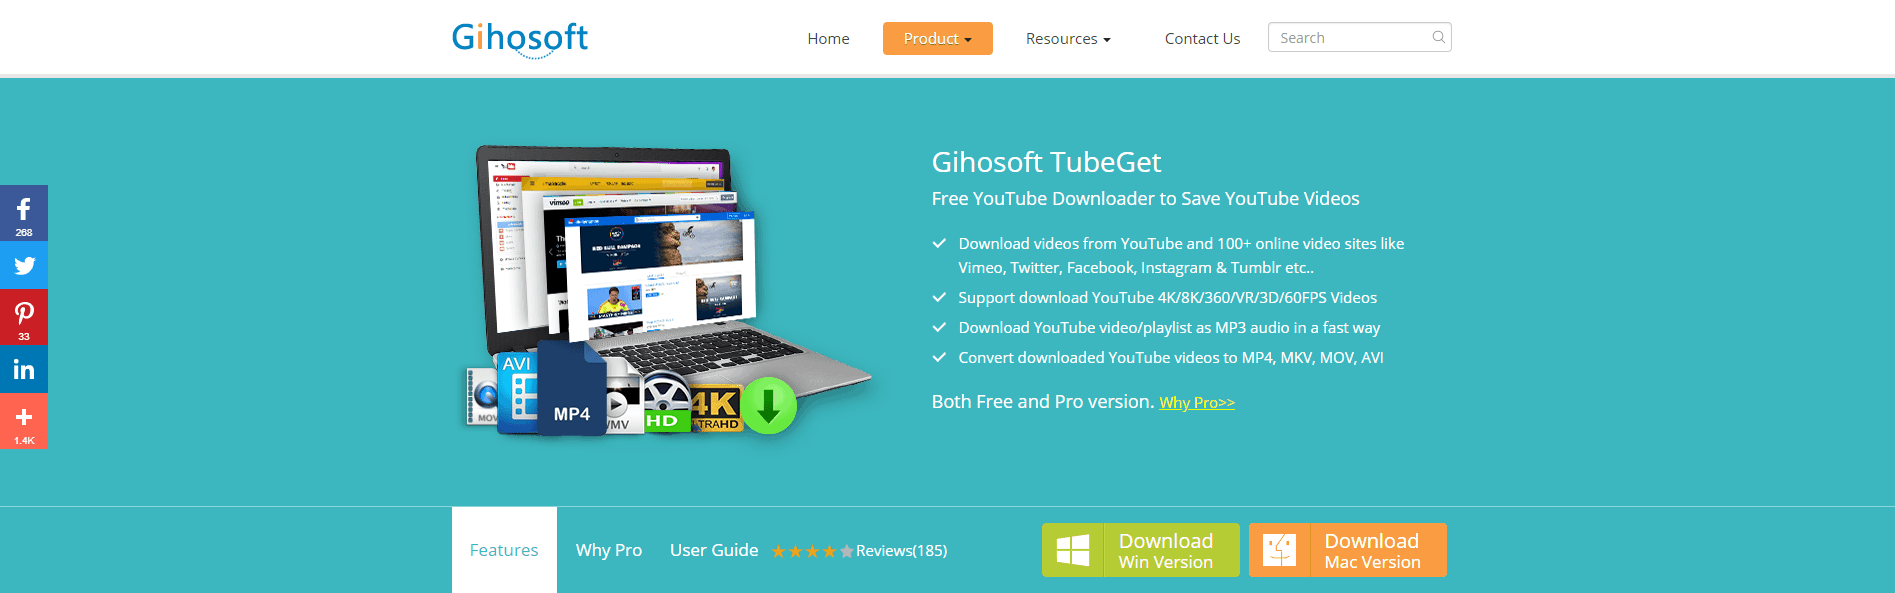 Gihosoft TubeGet Homepage Screenshot